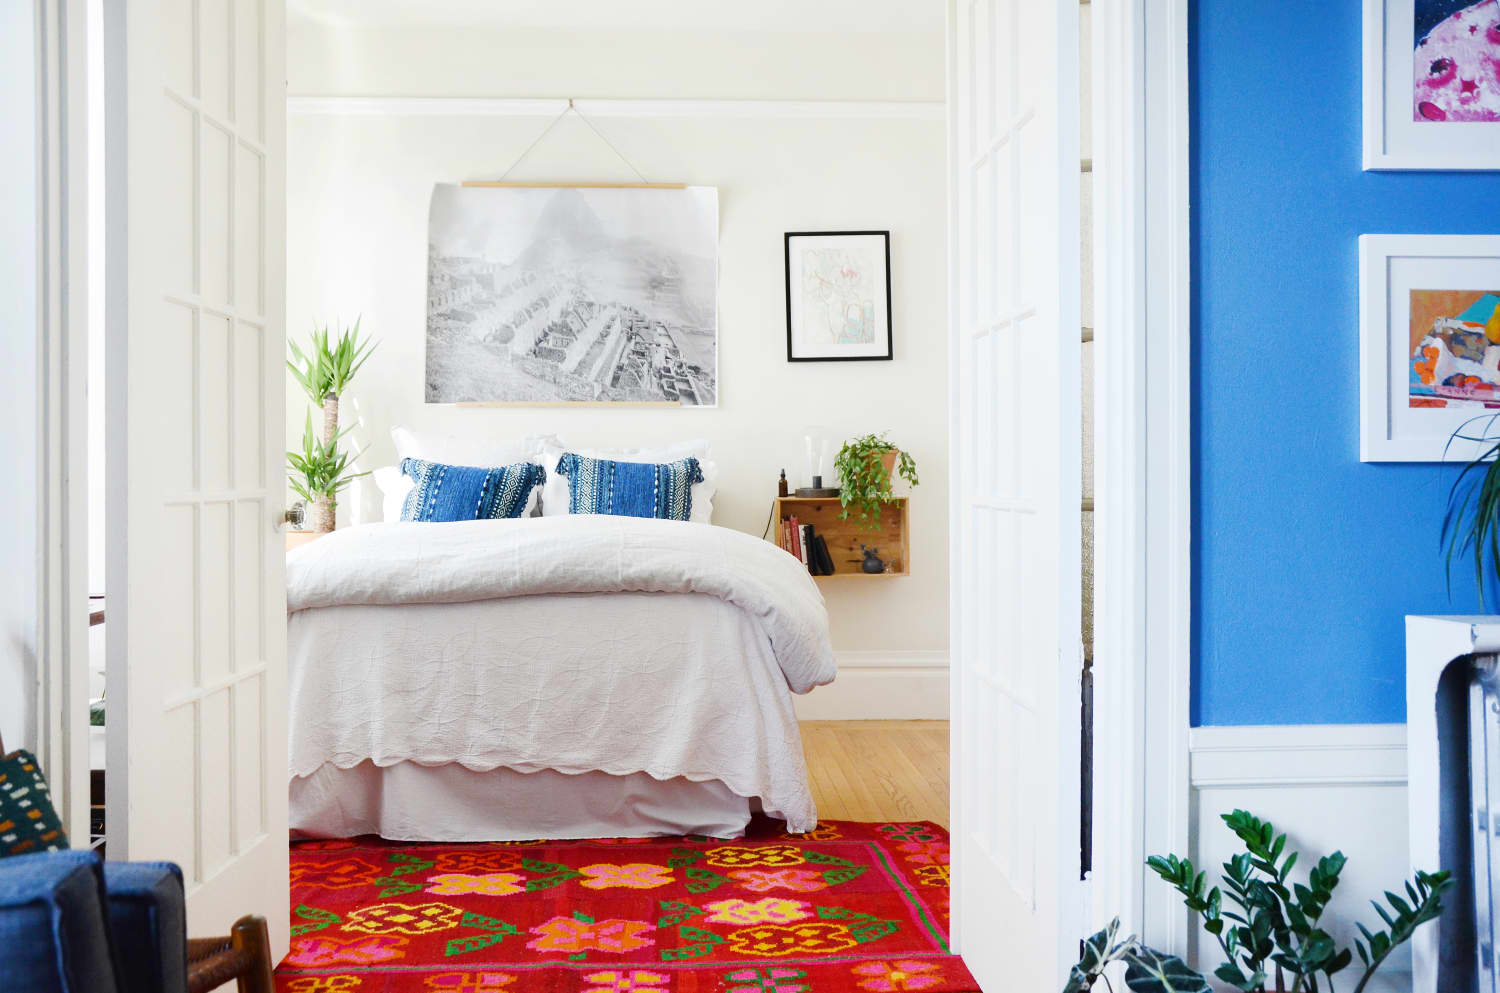 How to arrange a small bedroom small bedroom layout - How to arrange a small bedroom with a queen bed ...